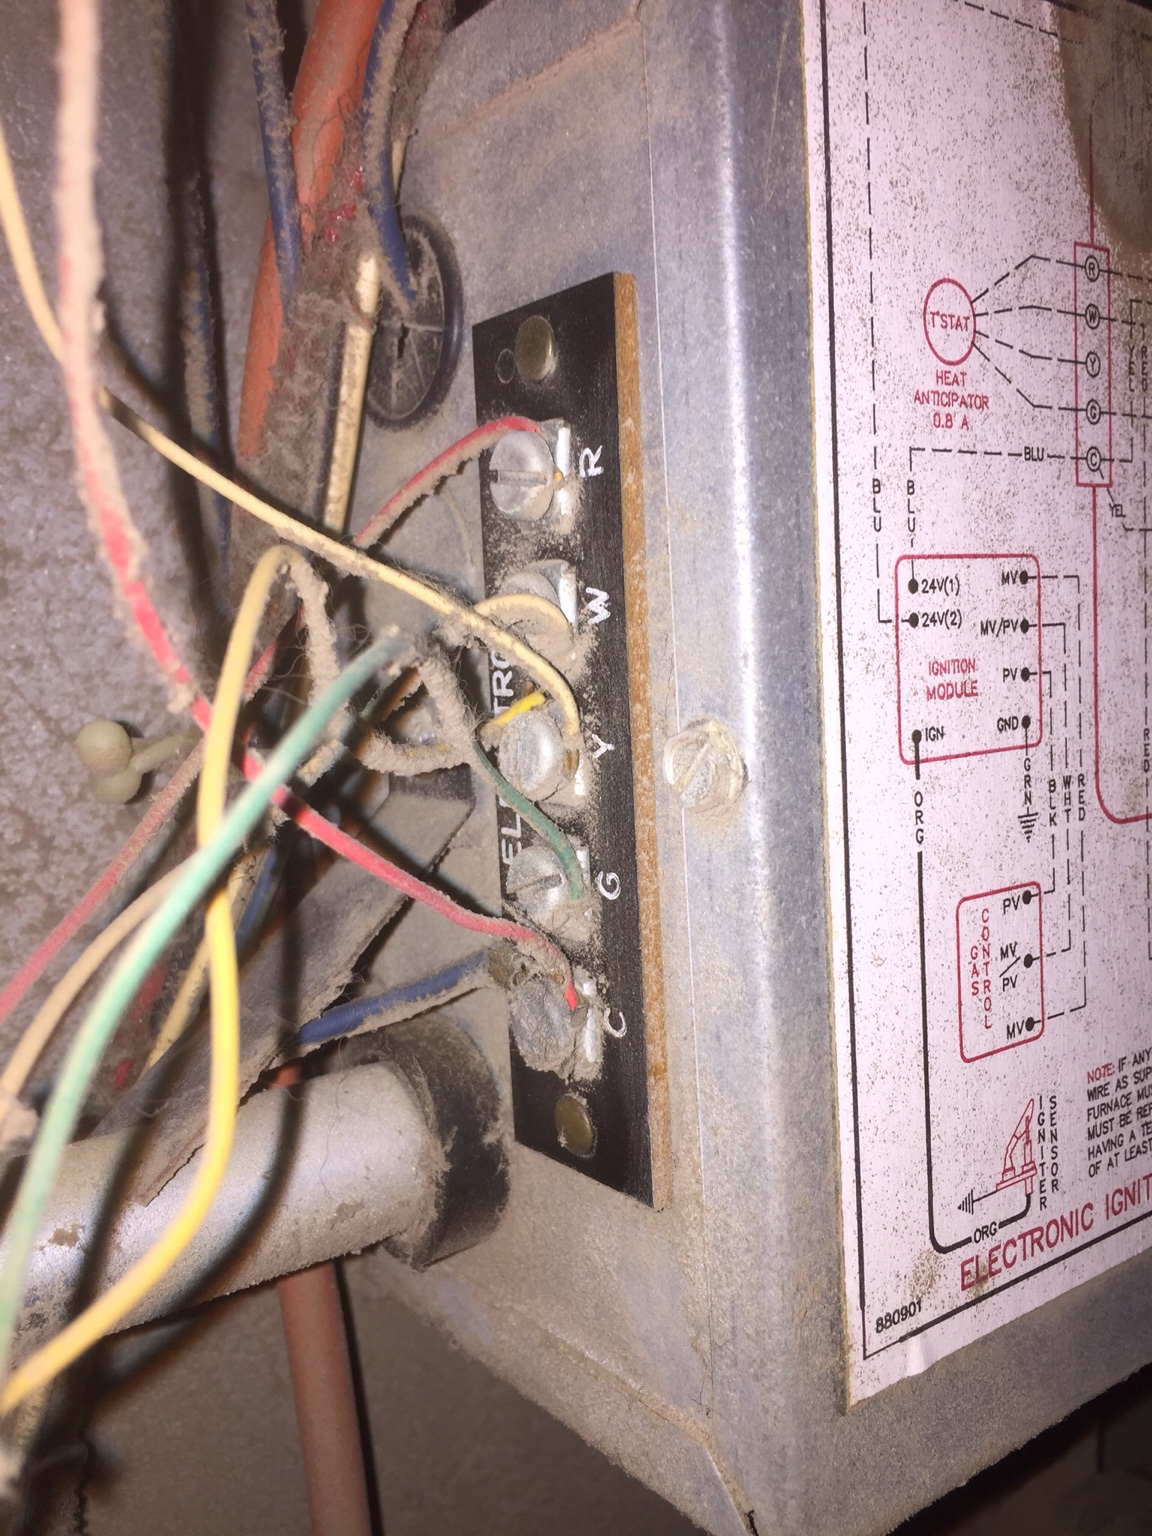 7f26edbf393b06f1672b2435c657d601 question about insteon thermostat wiring how are you using isy insteon thermostat wiring diagram at crackthecode.co